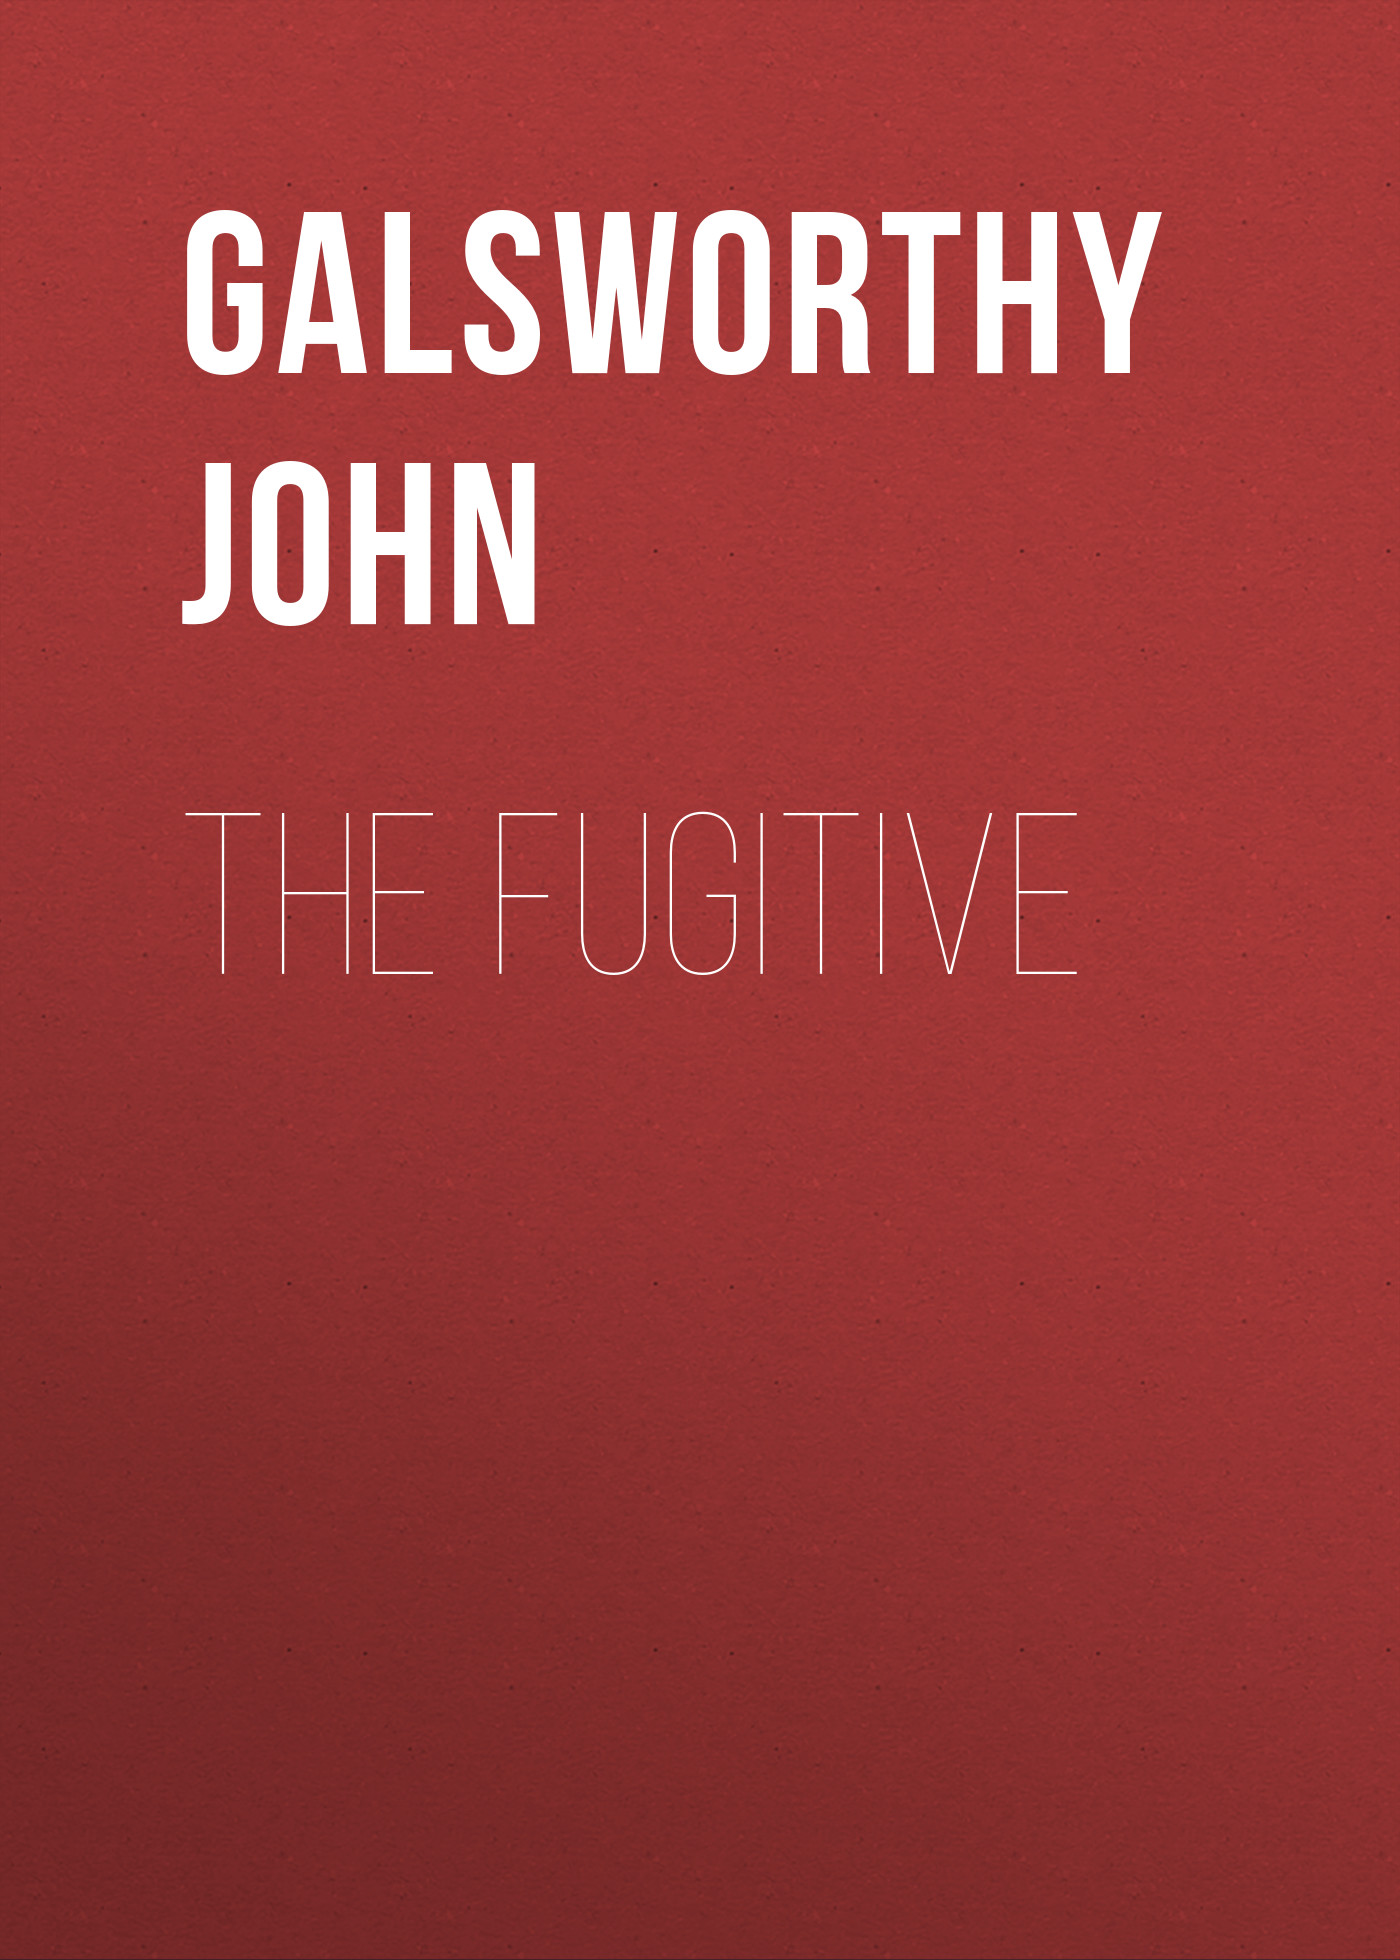 Galsworthy John The Fugitive john galsworthy the burning spear